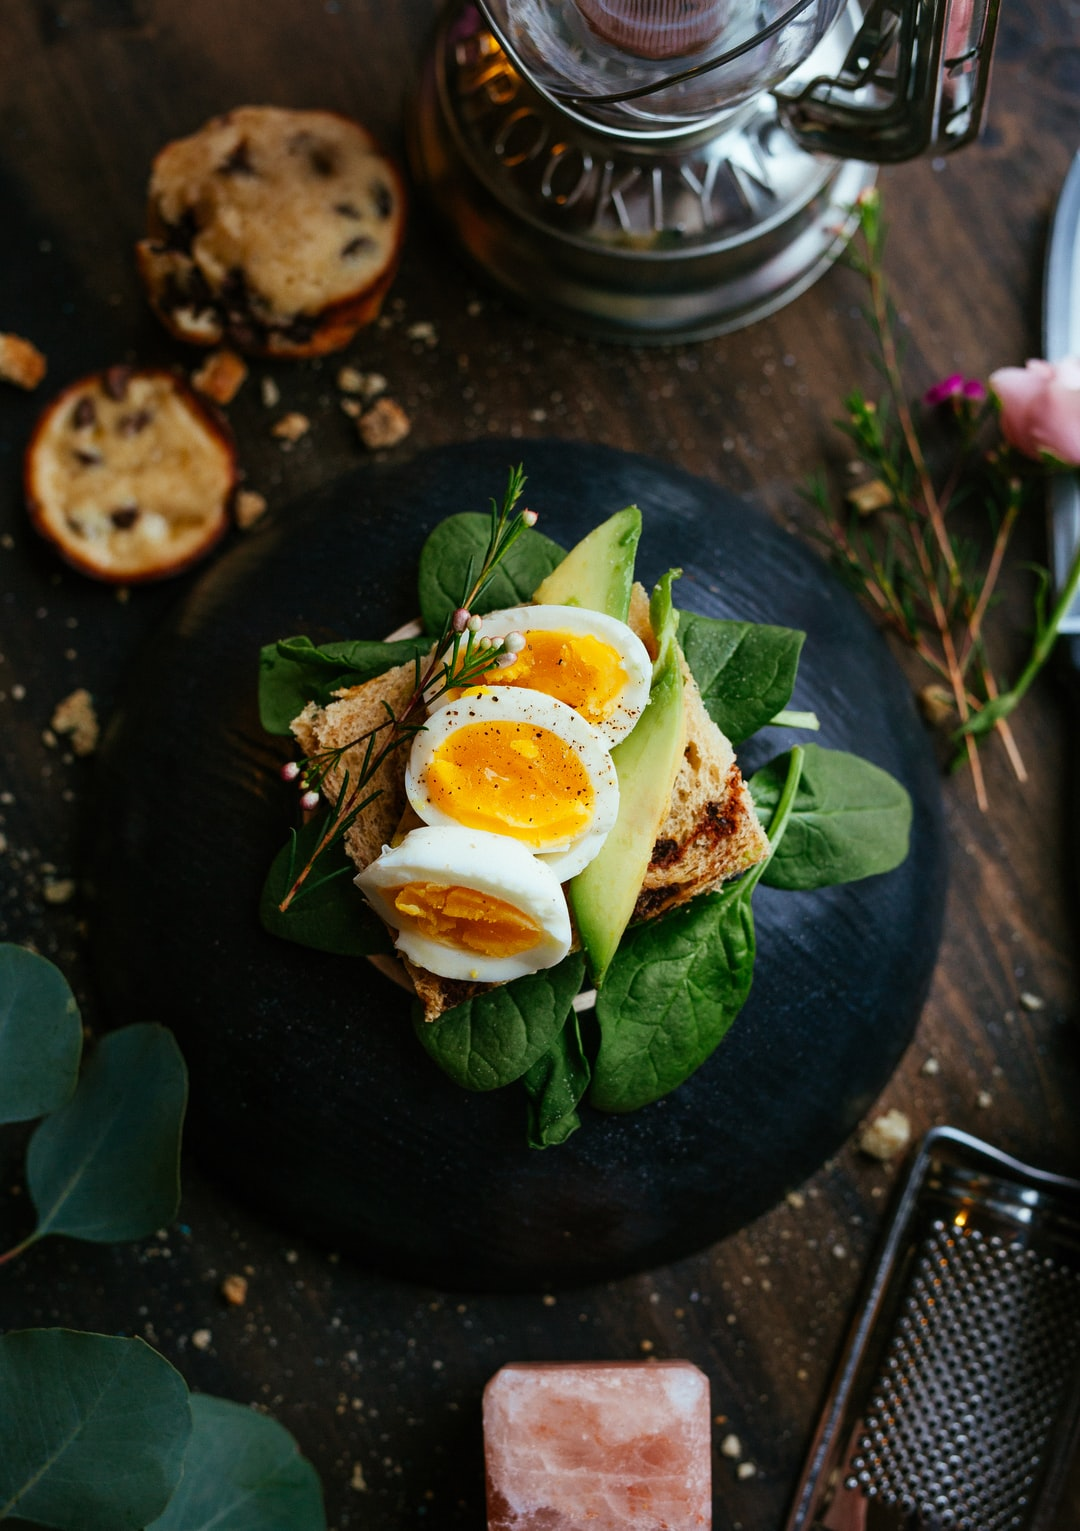 Avocado and Egg Toast